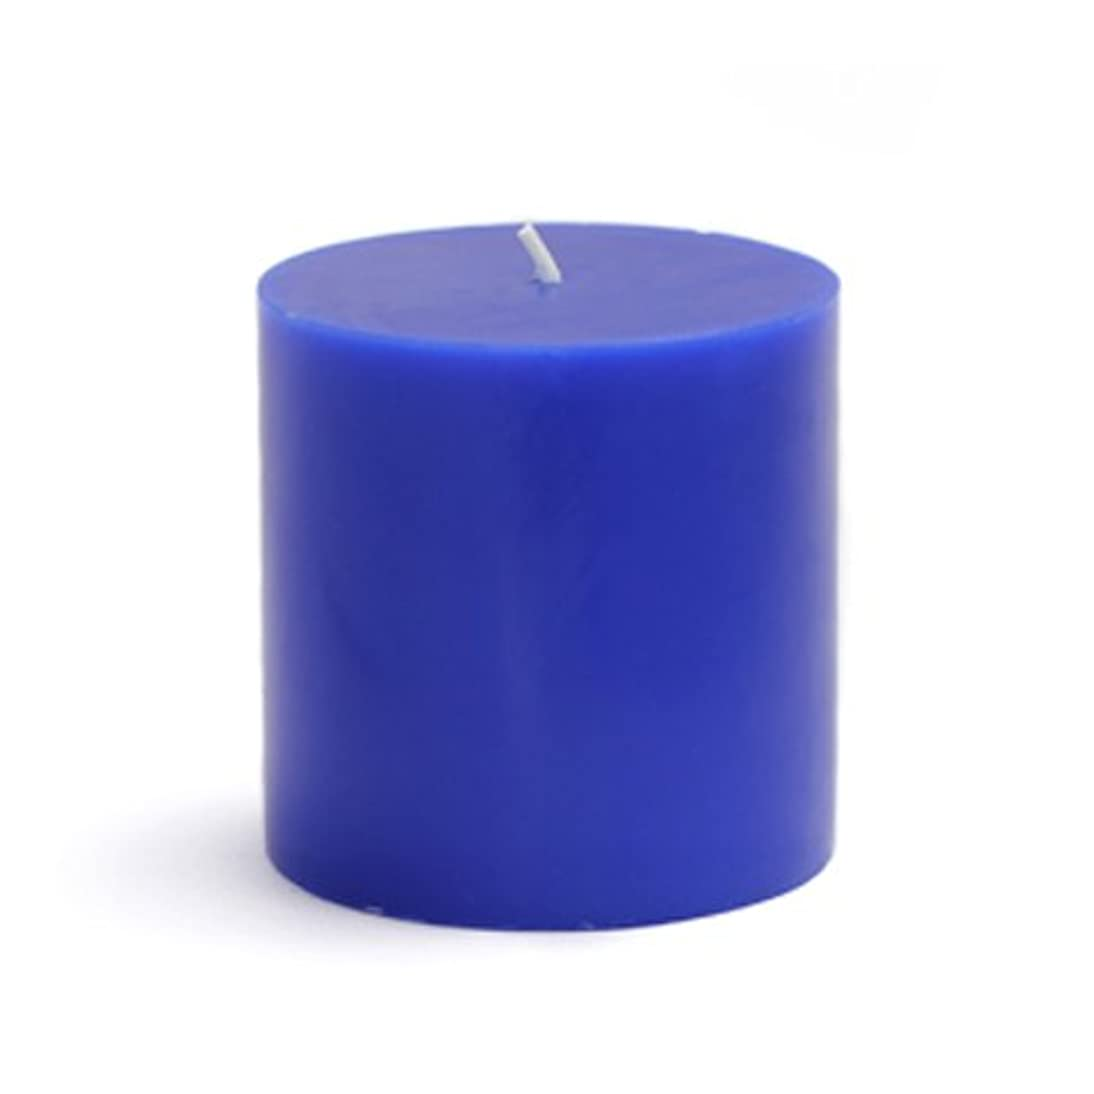 エジプト十億狭いZest Candle CPZ-077-12 3 x 3 in. Blue Pillar Candles -12pcs-Case- Bulk